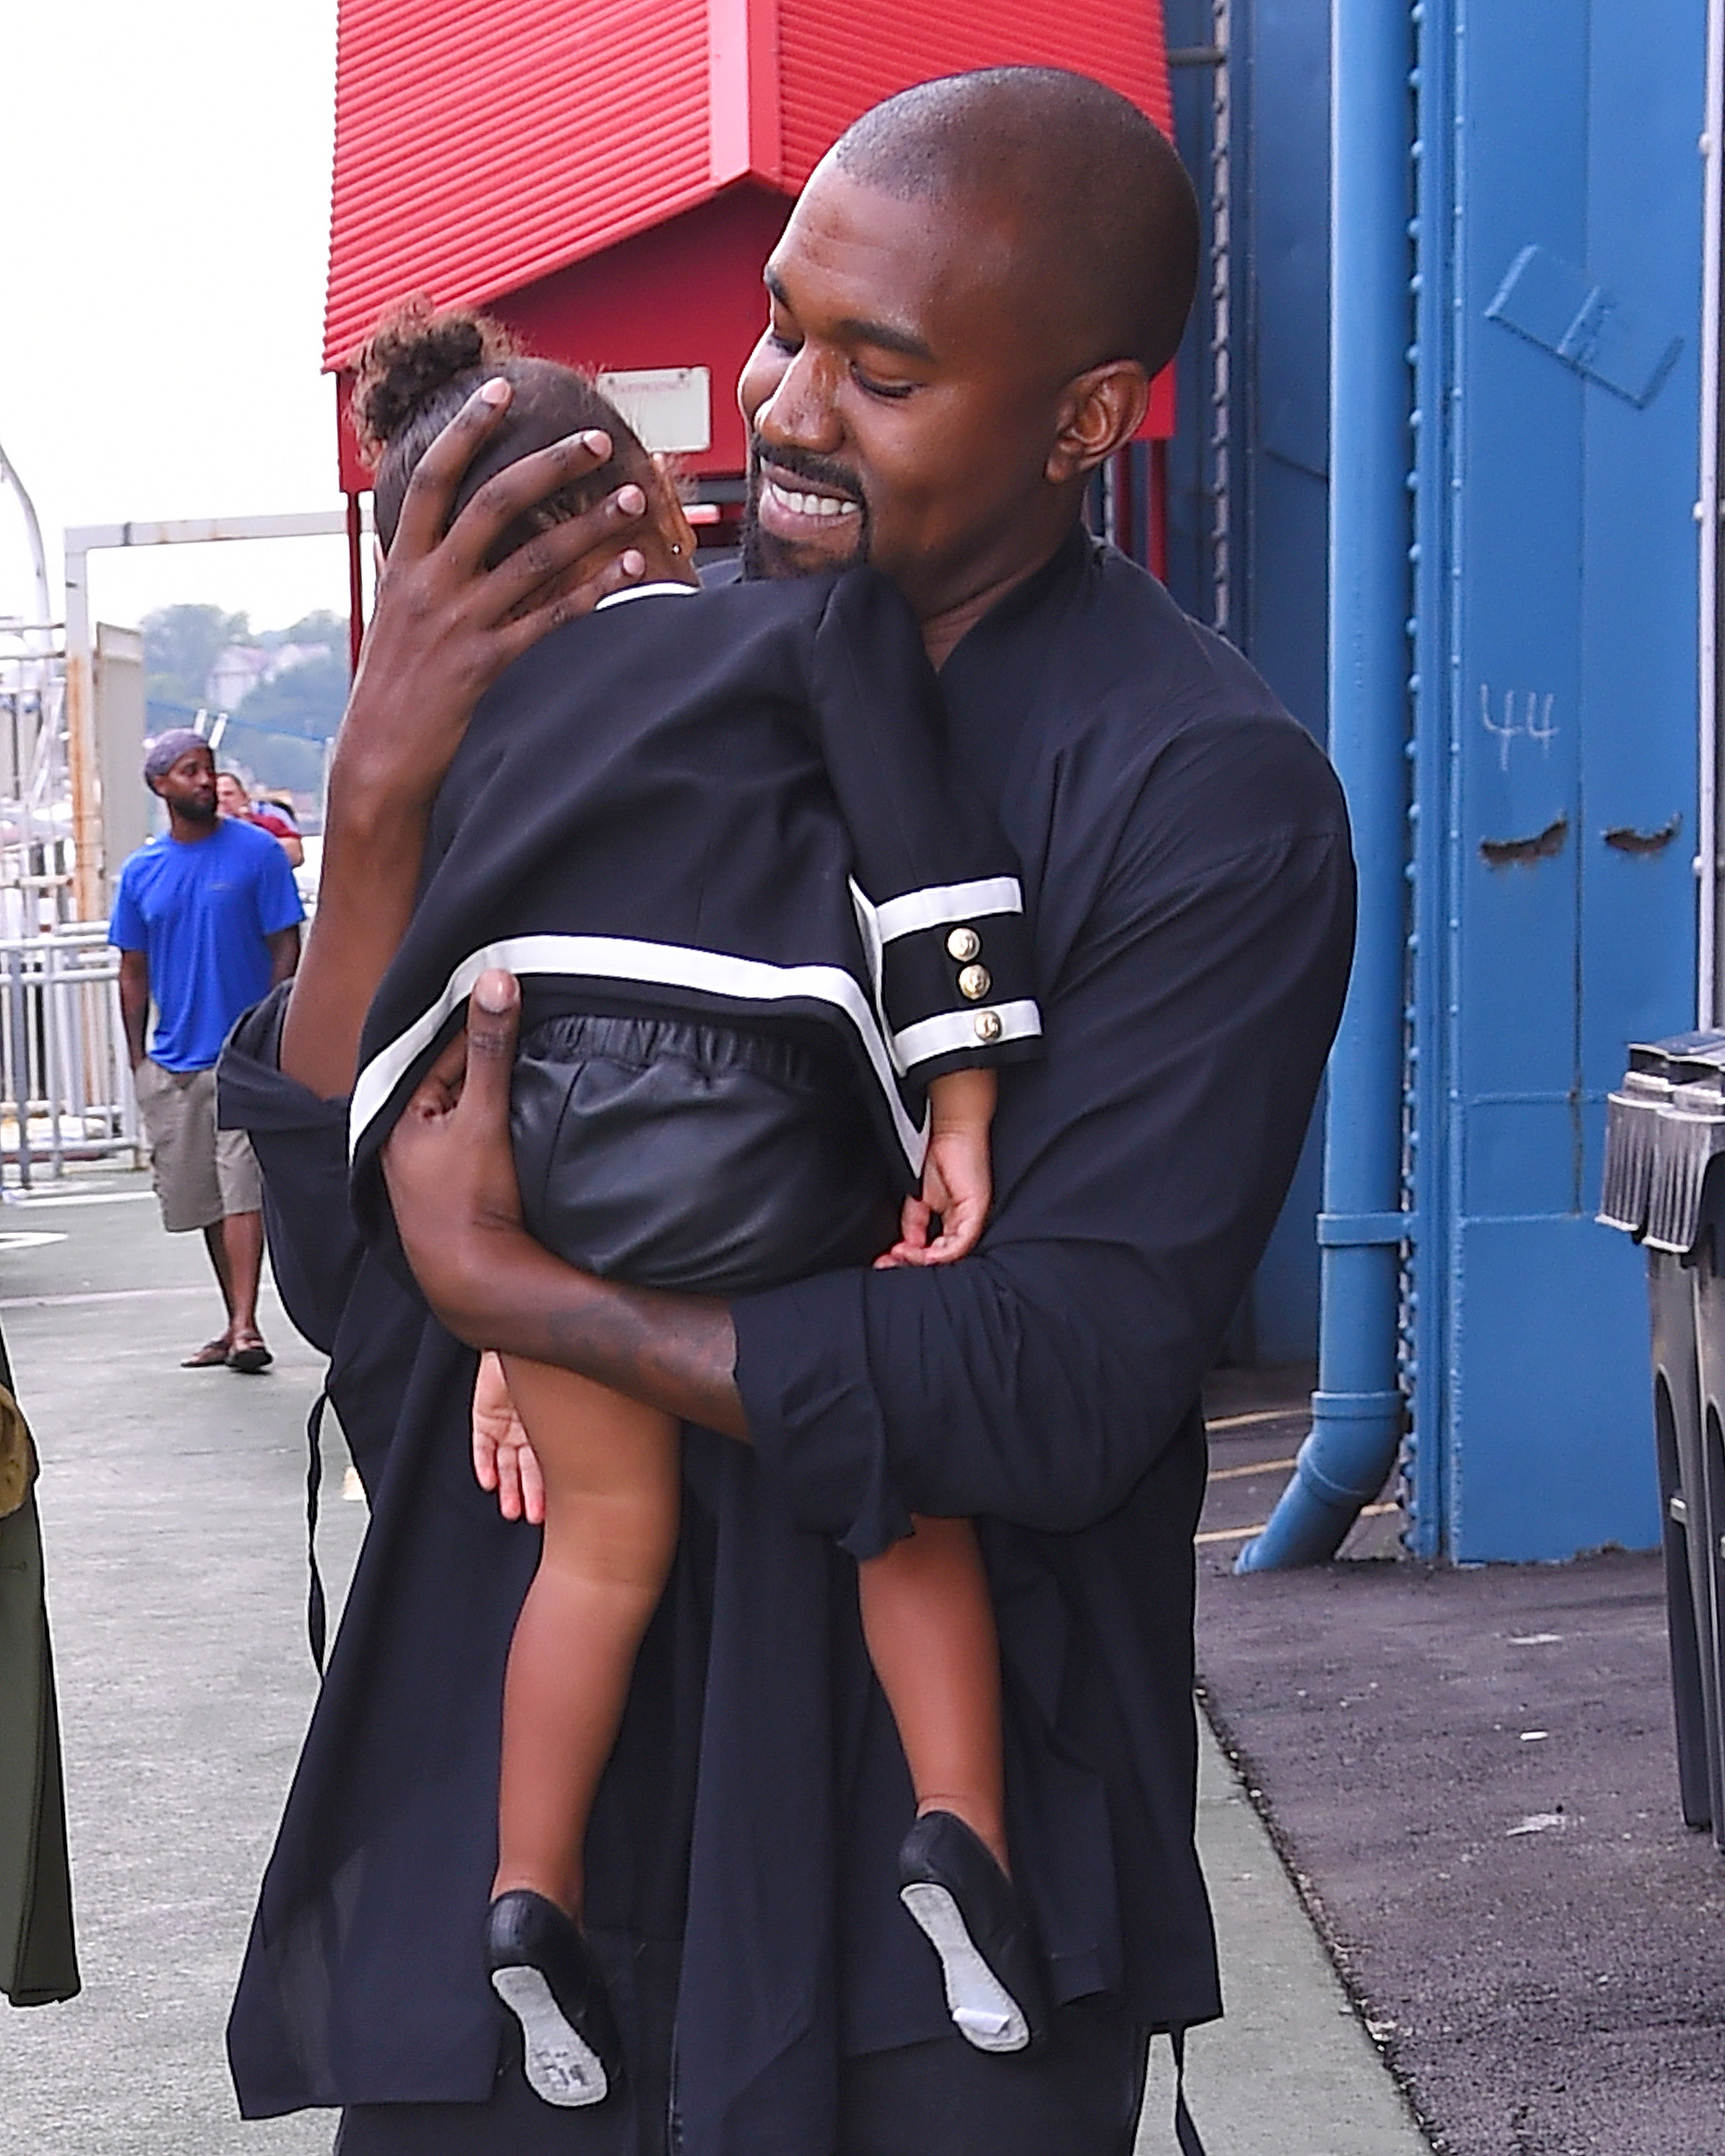 Amar A Muerte Capitulo 27: ¡Kanye West Es Un Sweet Daddy!